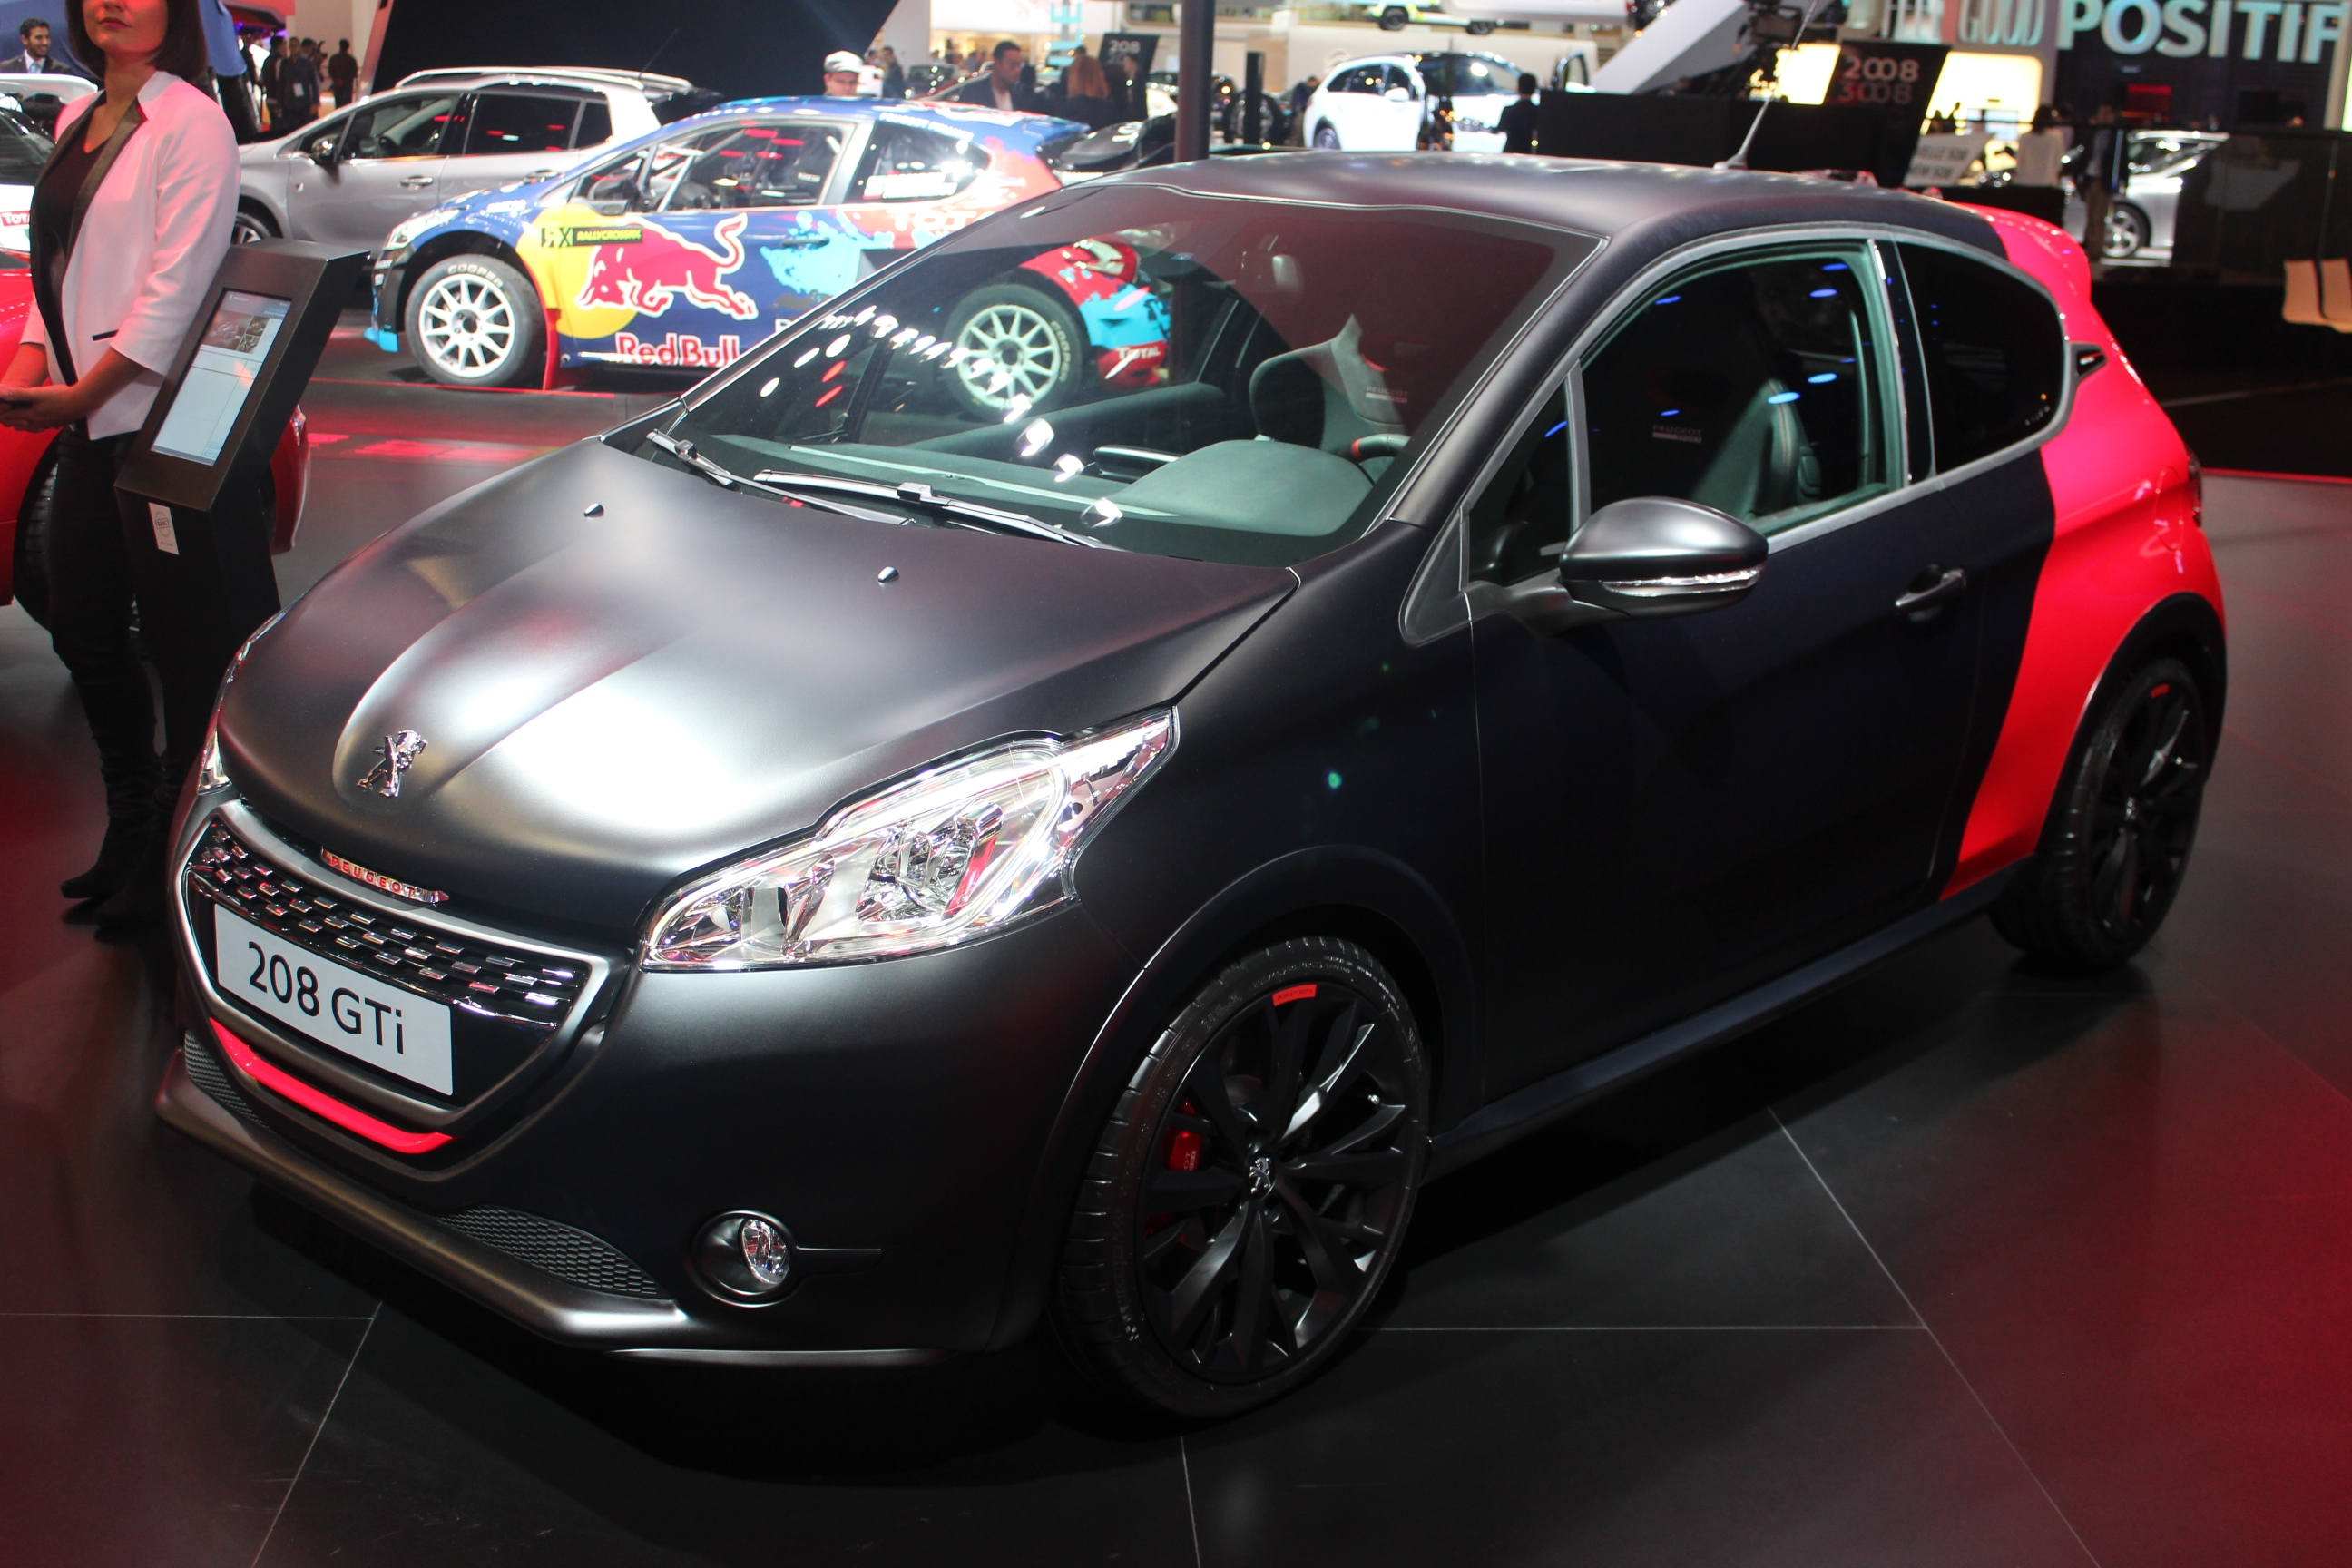 peugeot 208 gti 30th en rouge et noir vid o en direct. Black Bedroom Furniture Sets. Home Design Ideas